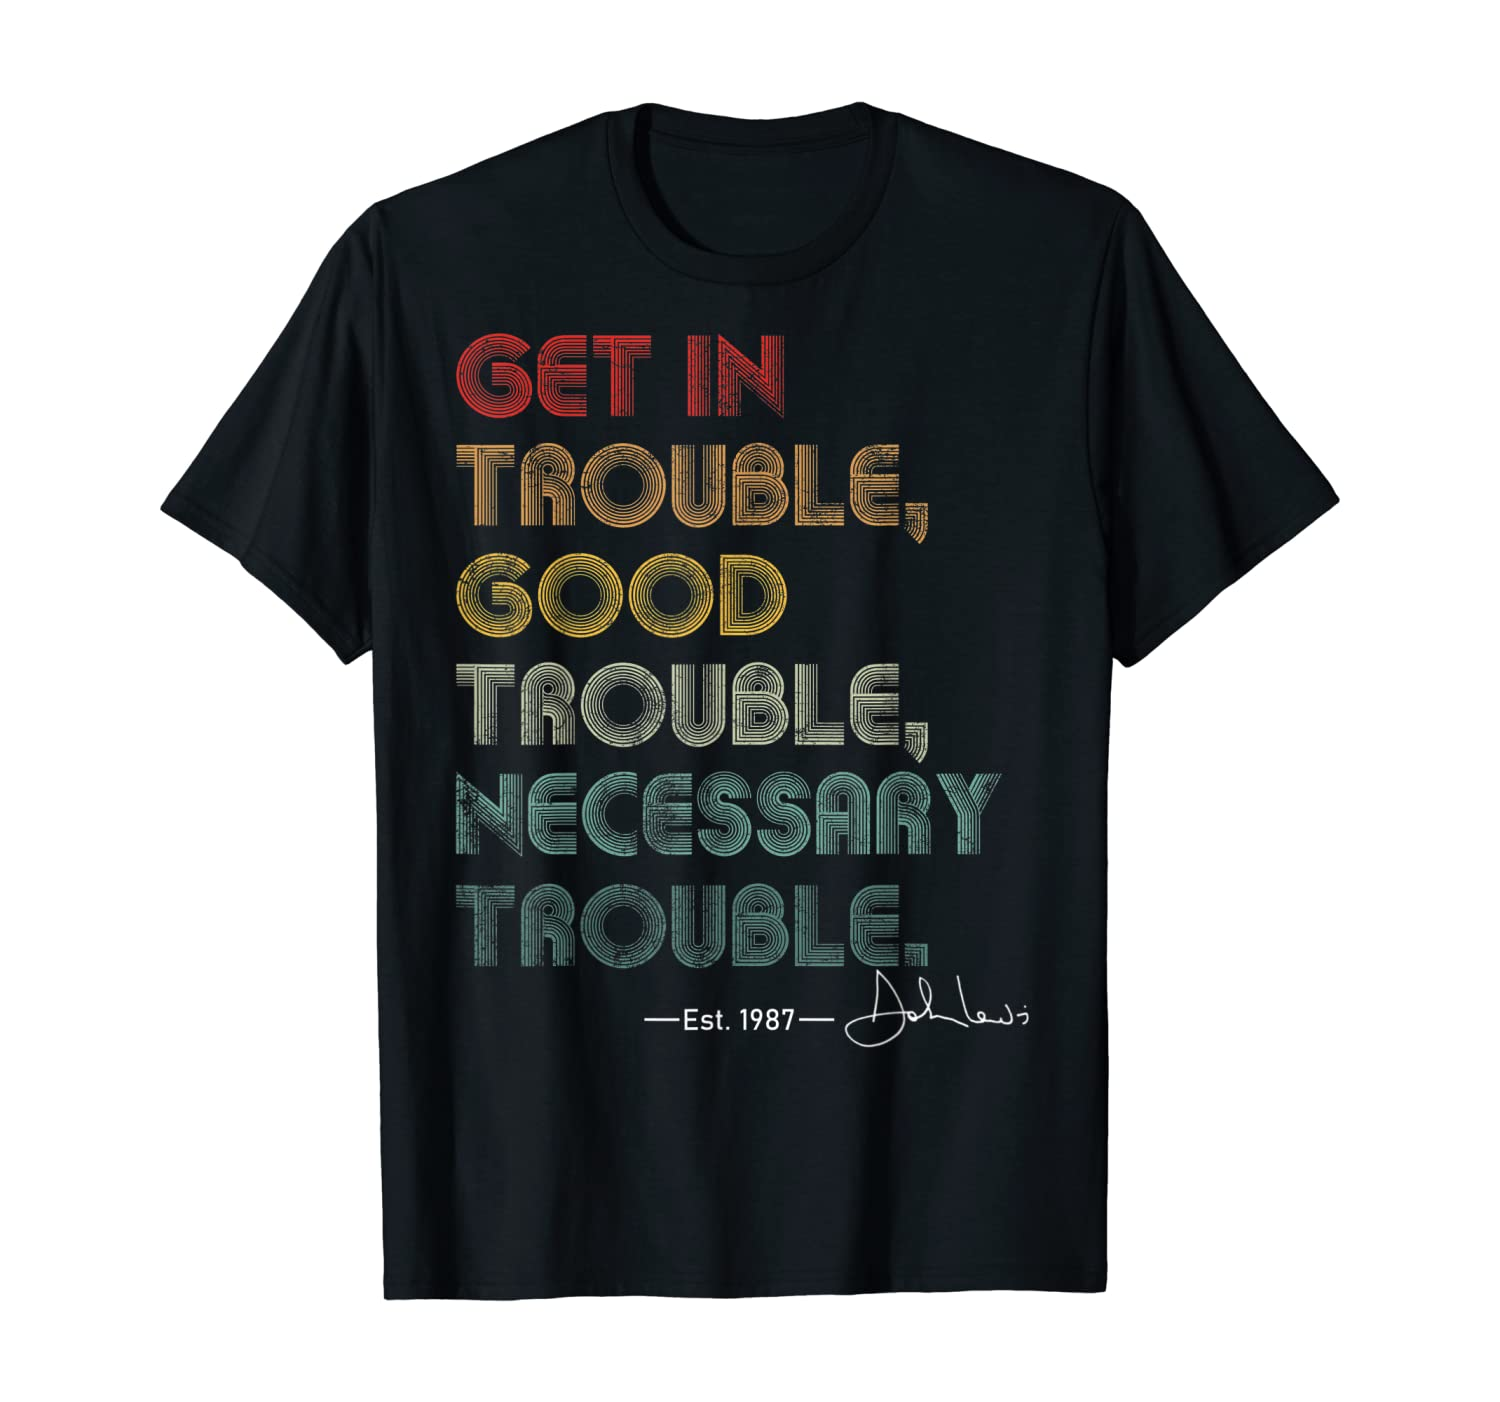 John Lewis Tee Get in Good Necessary Trouble Social Justice T-Shirt